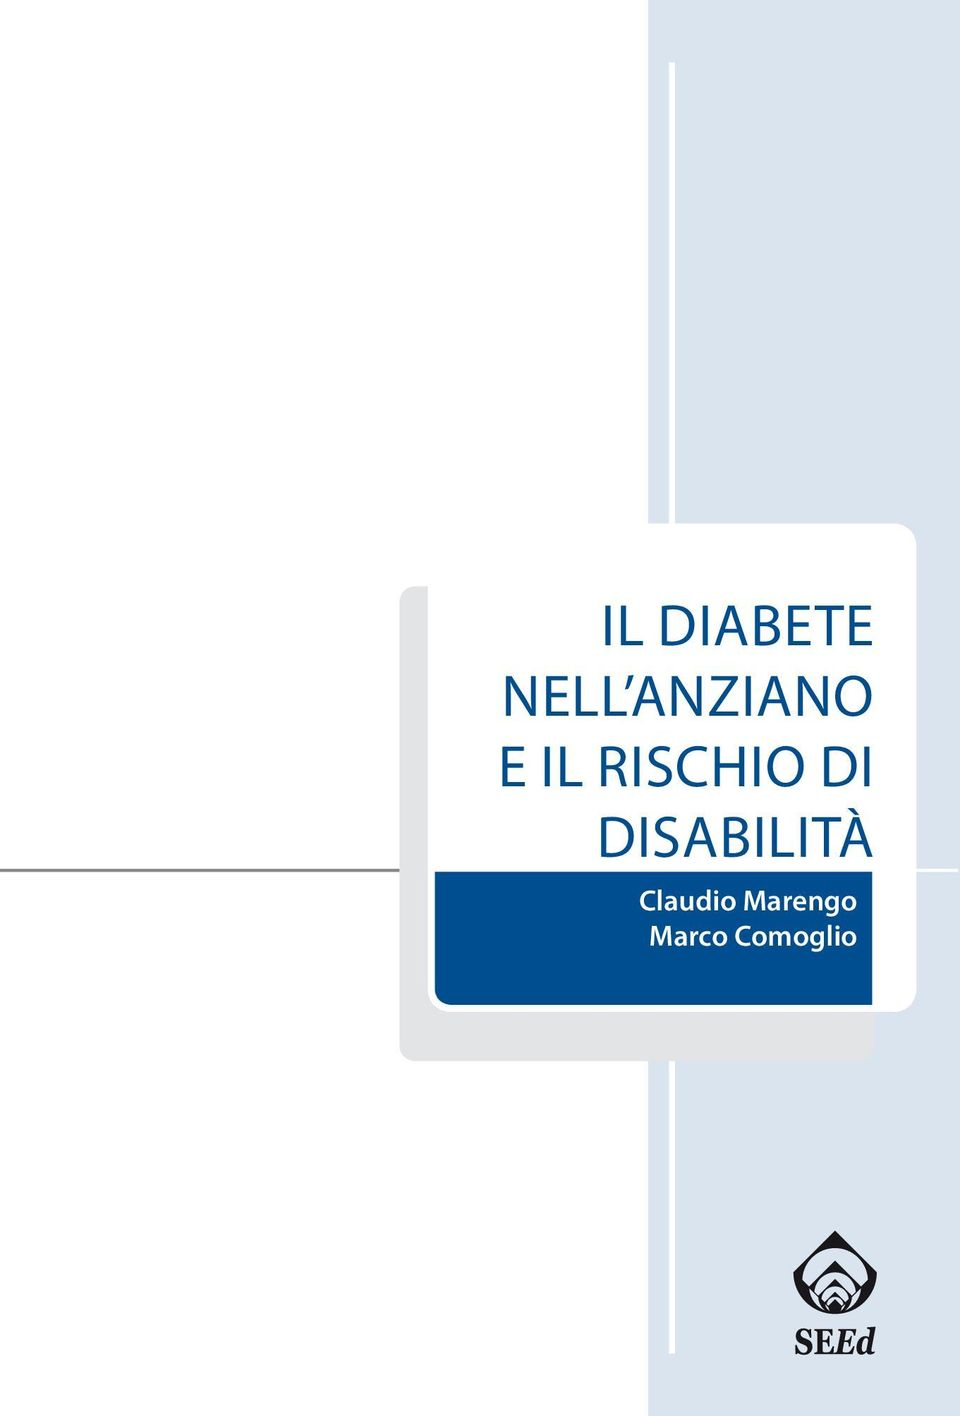 di disabilità